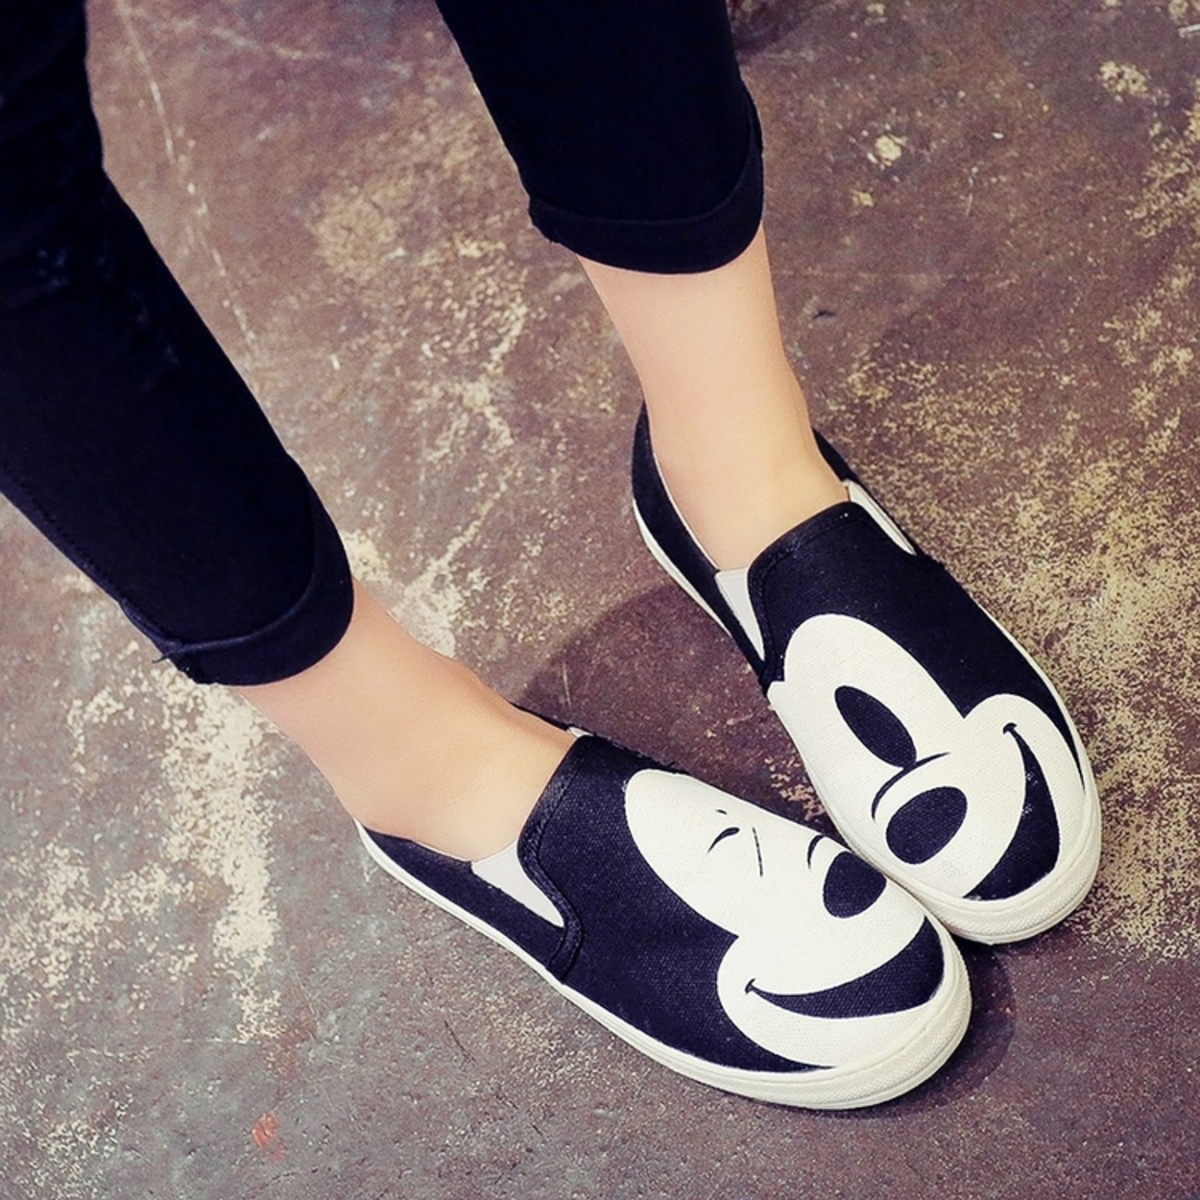 Wearing comfortable shoes to Disneyland will help you to have the best experience possible. Nobody likes achy feet!